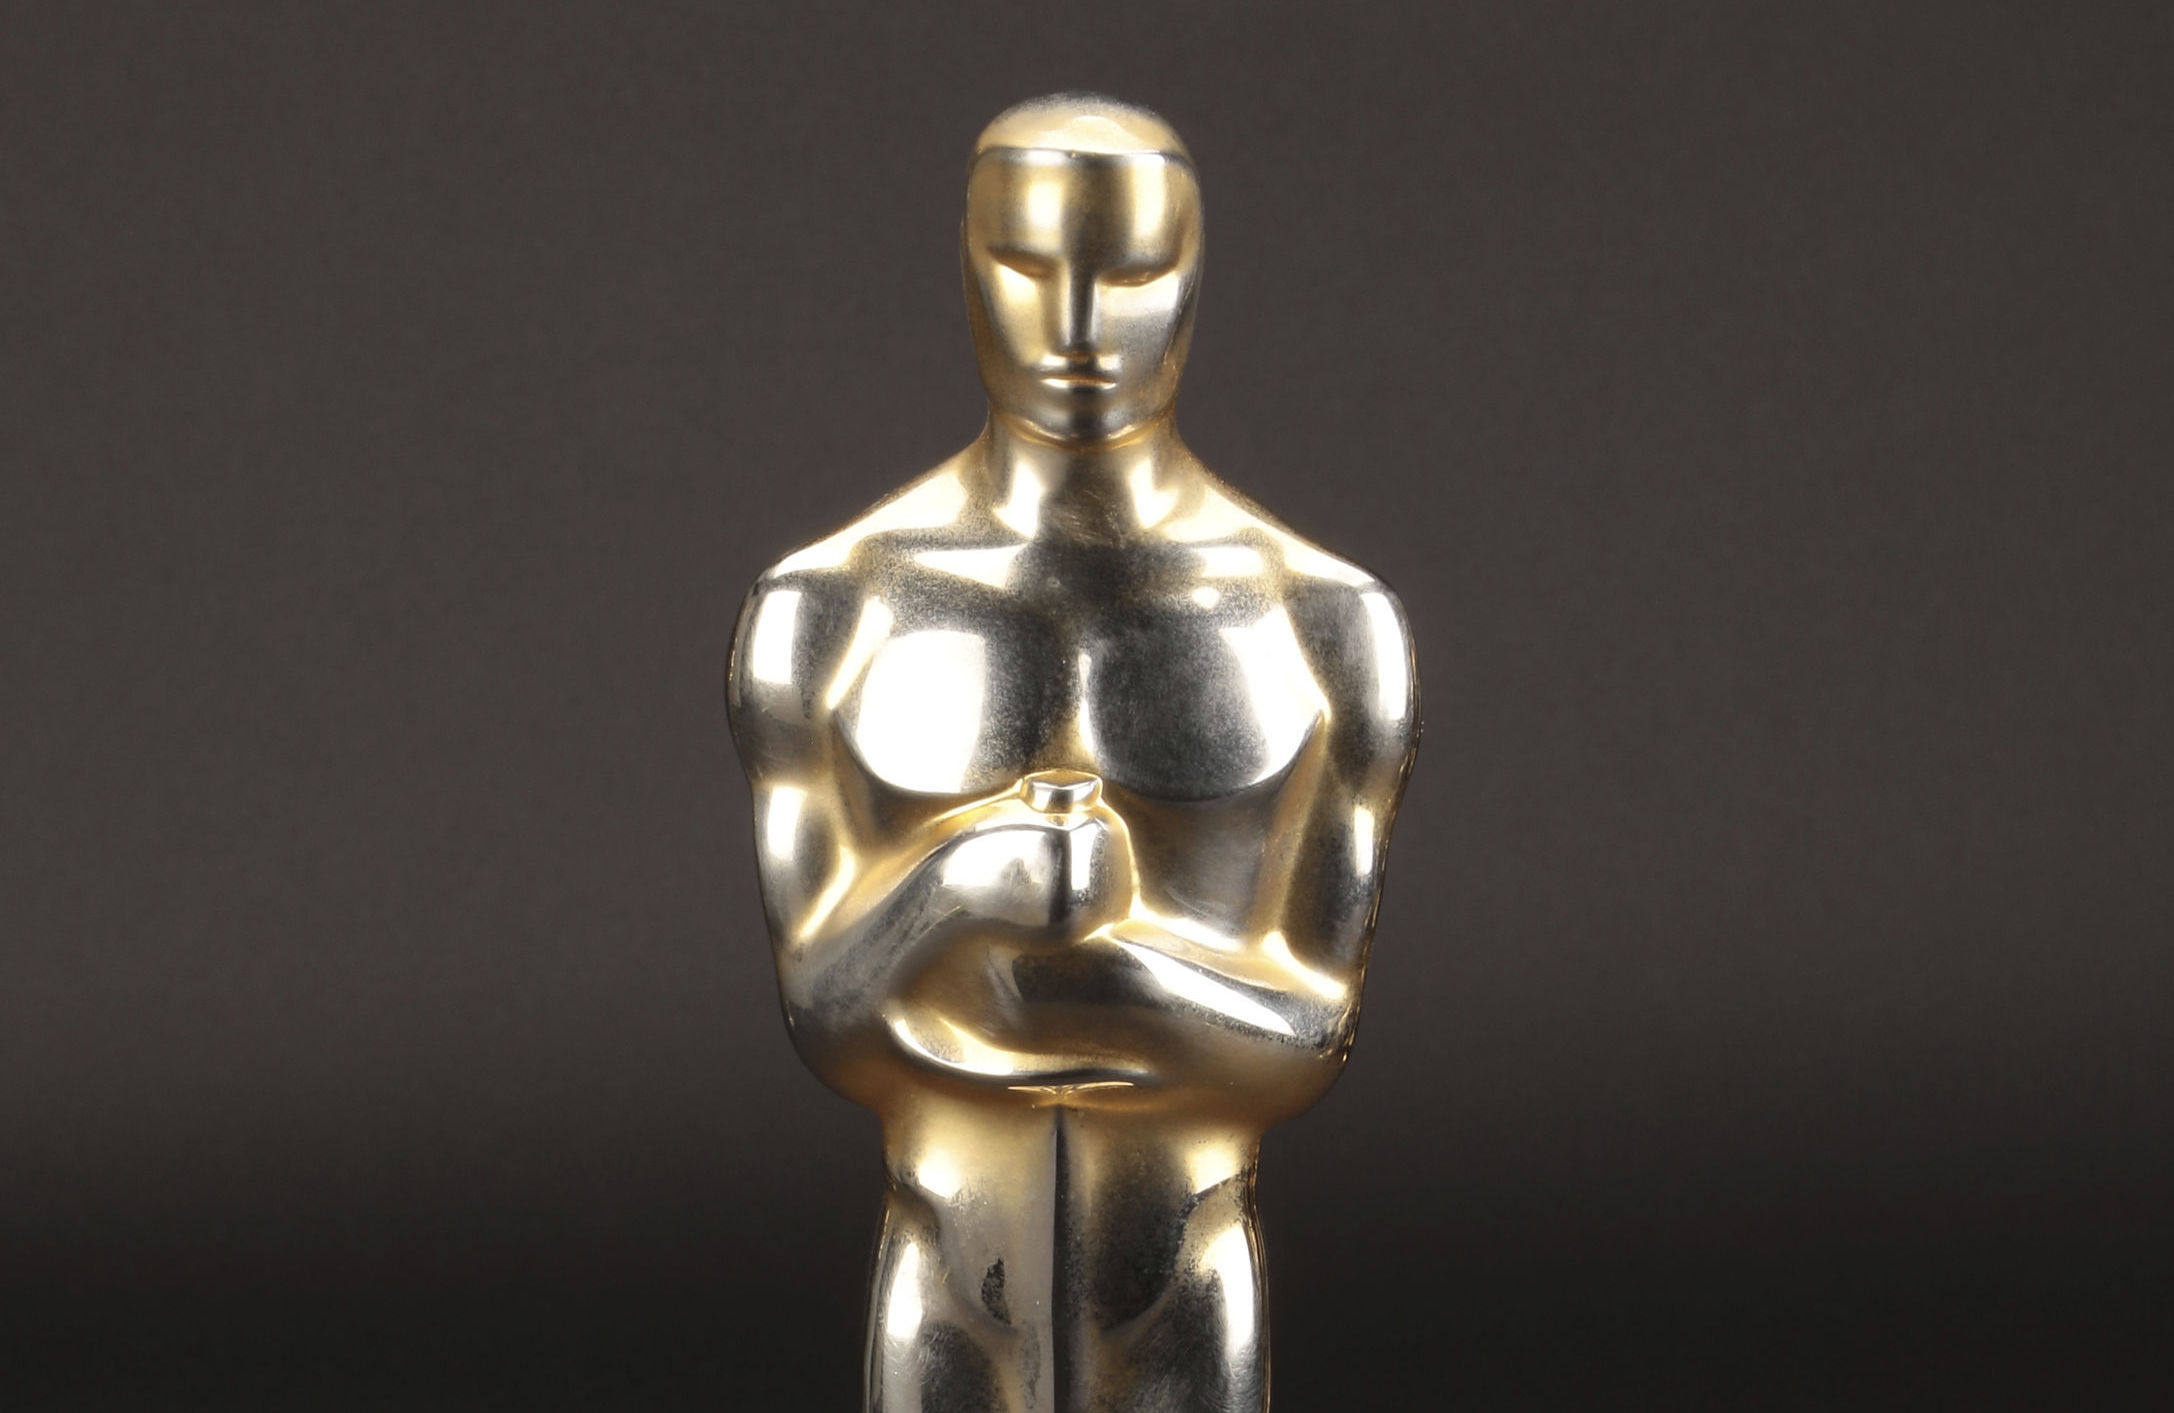 Statuettes are not often sold due to rules set by the Academy